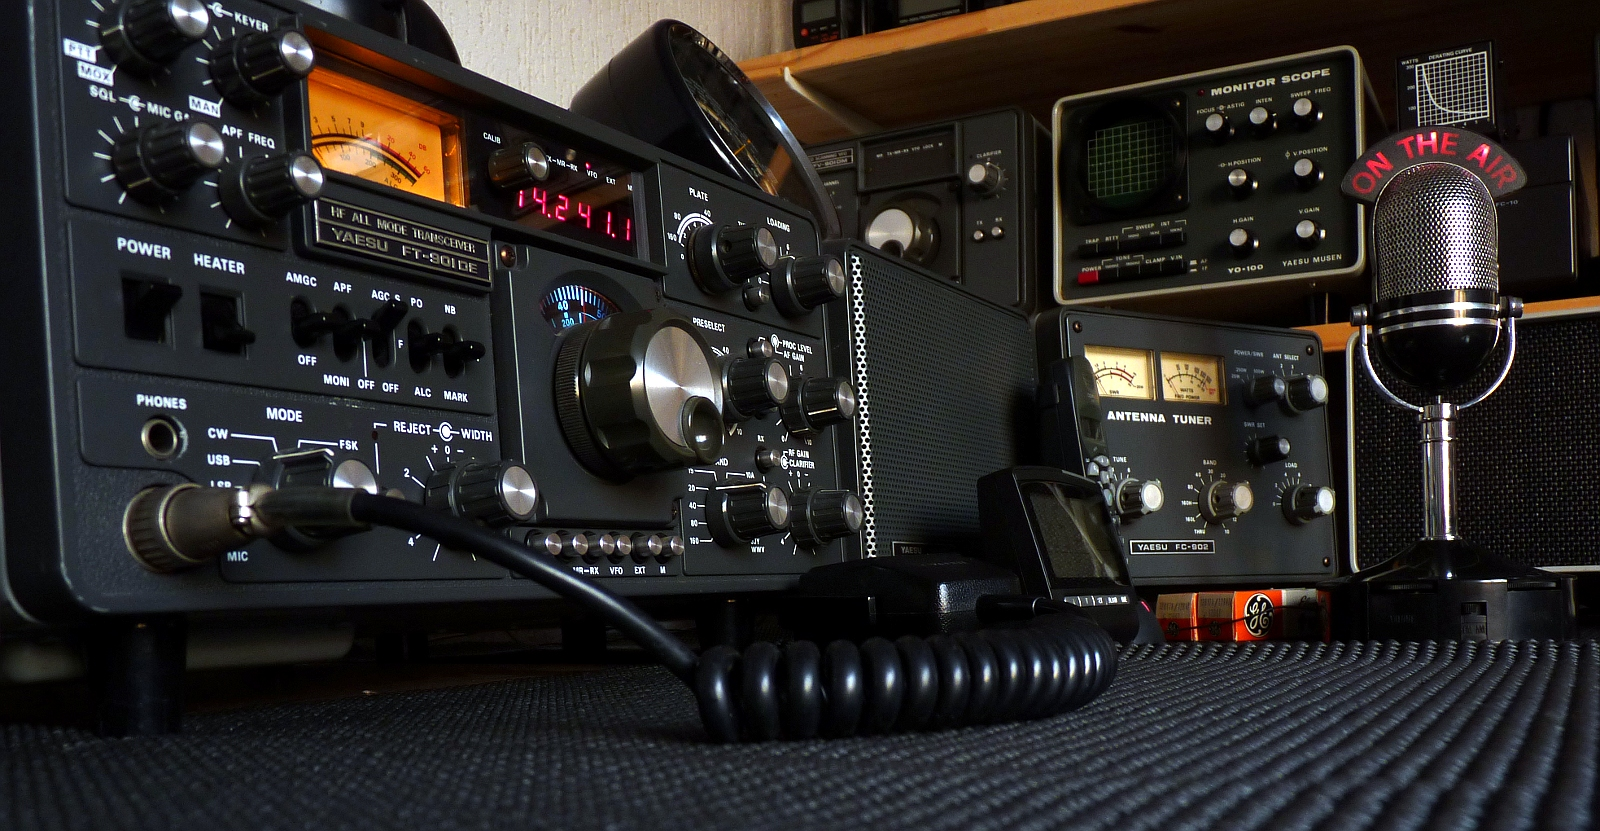 Radio Communication Methods During Emergencies- Part 4, by R. in NC